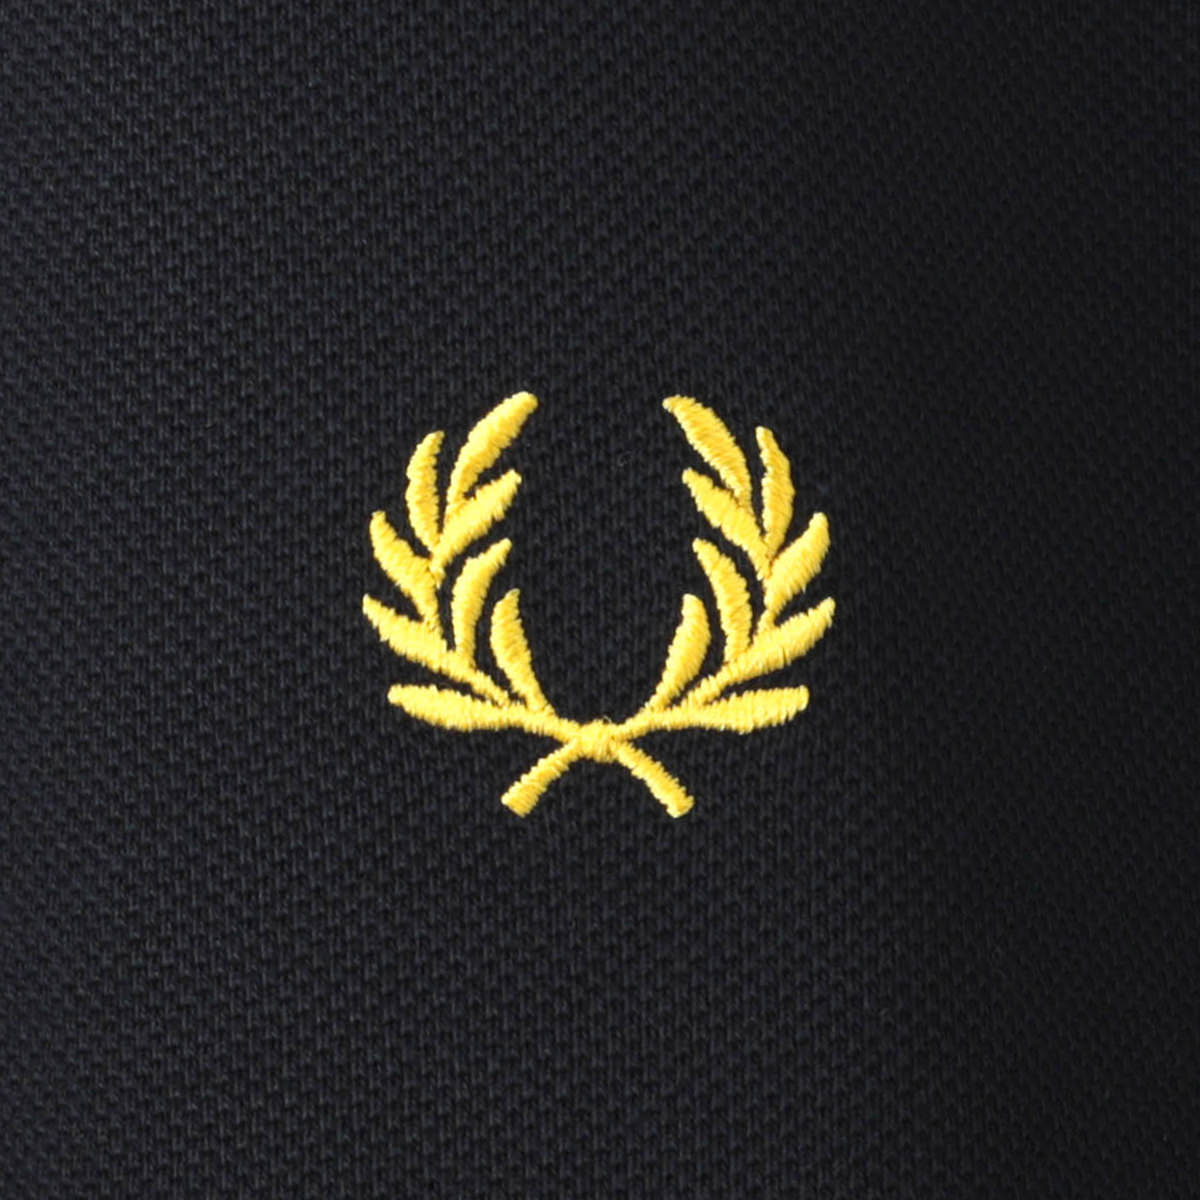 Fred Perry フレッドペリー メンズ ポロシャツ M3600 新色 15色 MADE IN ENGLAND 正規販売店